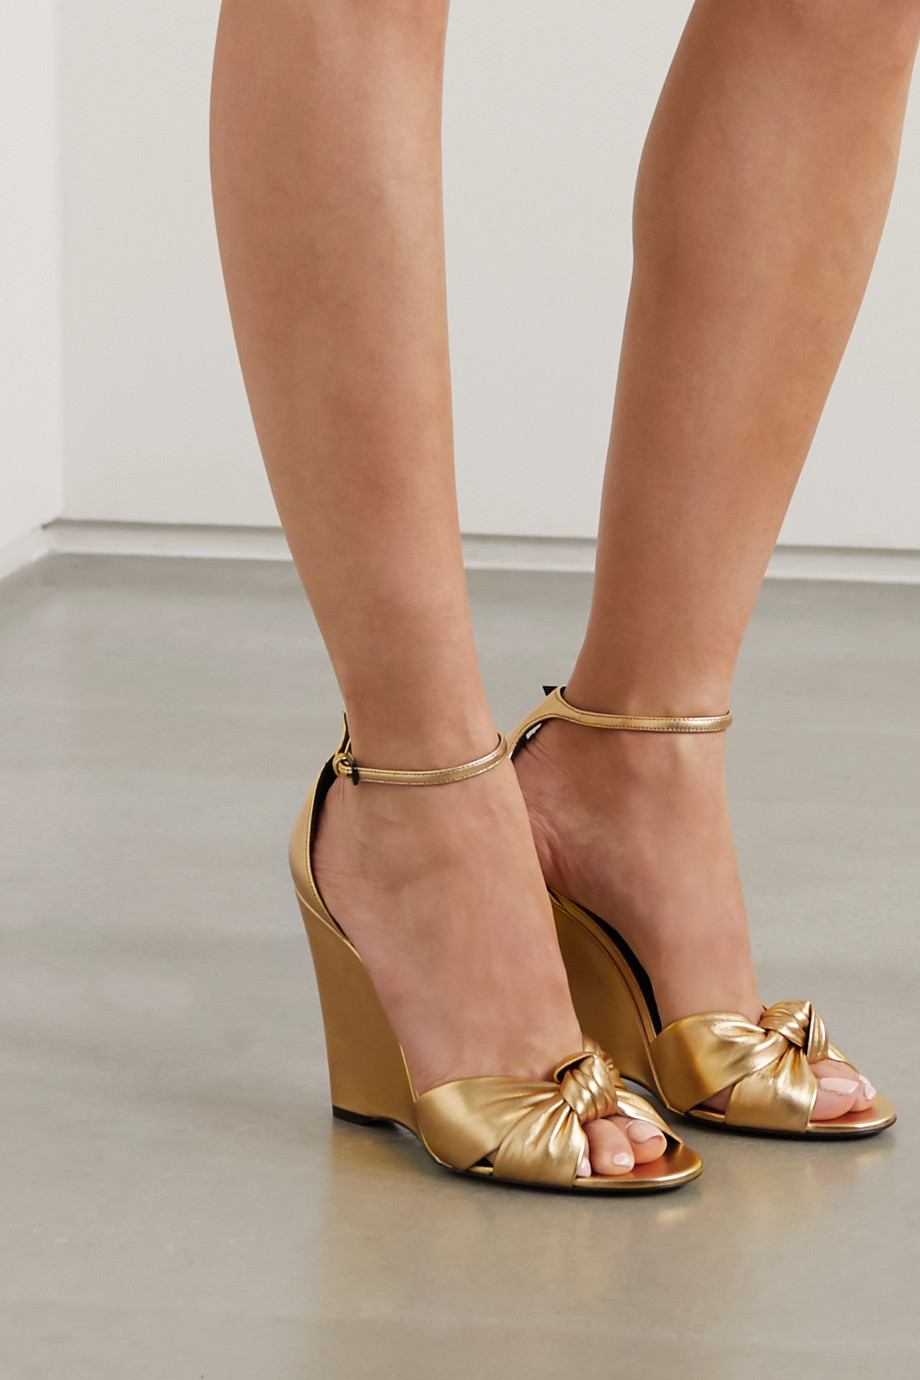 SAINT LAURENT Bianca knotted metallic leather wedge sandals